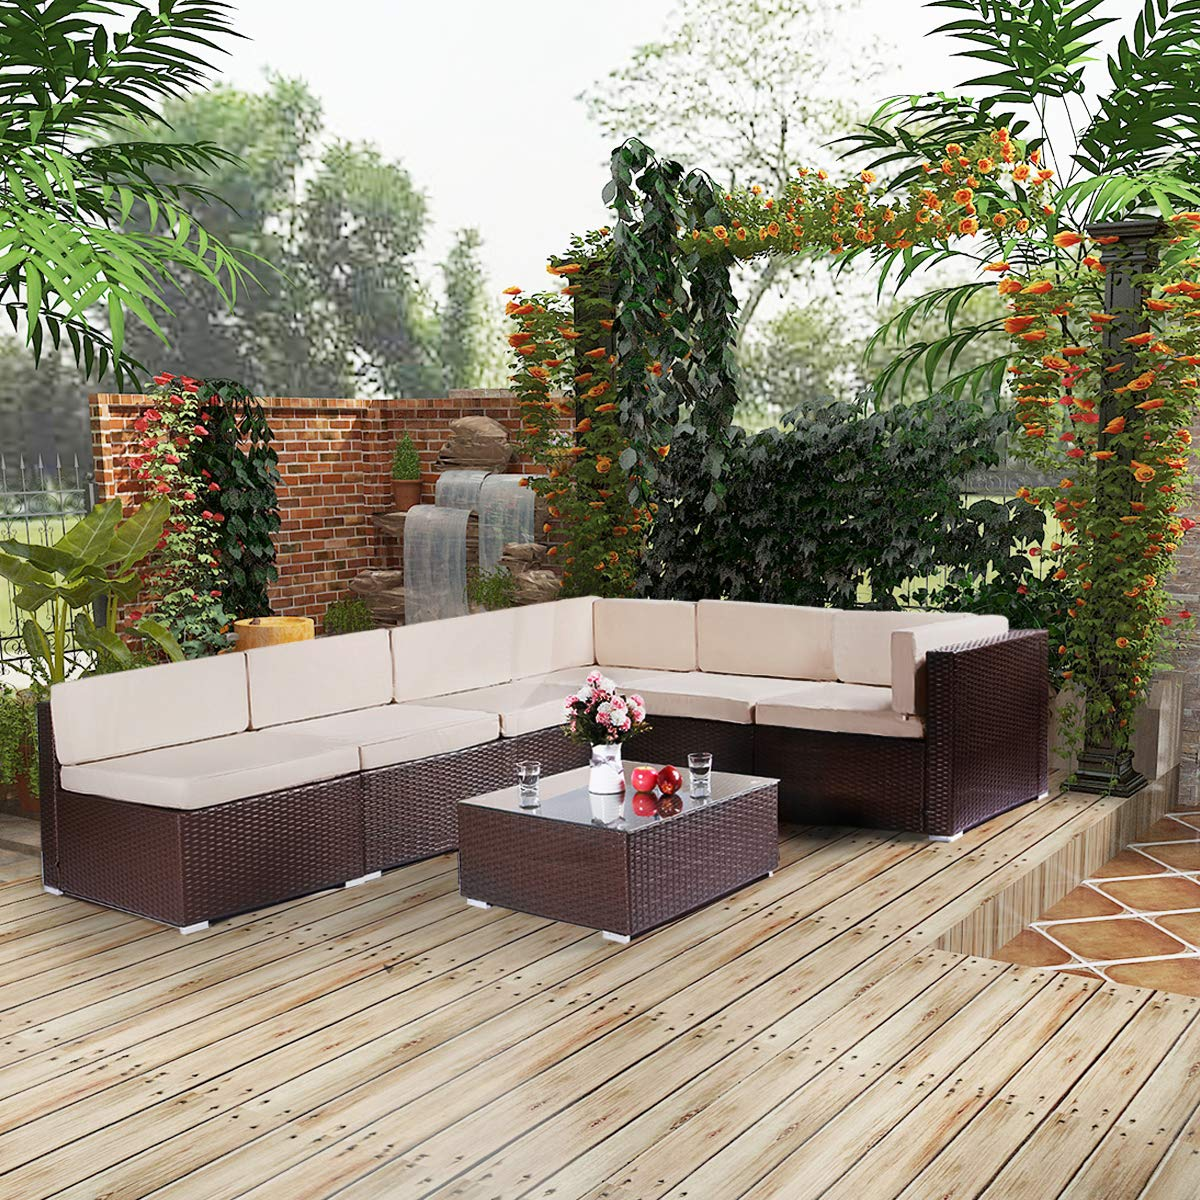 Esright 7 Pieces Patio PE Rattan Wicker Sofa Sectional Furniture Wicker Chair Conversation Set with Cushions and Glass Top Tea Table,Brown by Esright